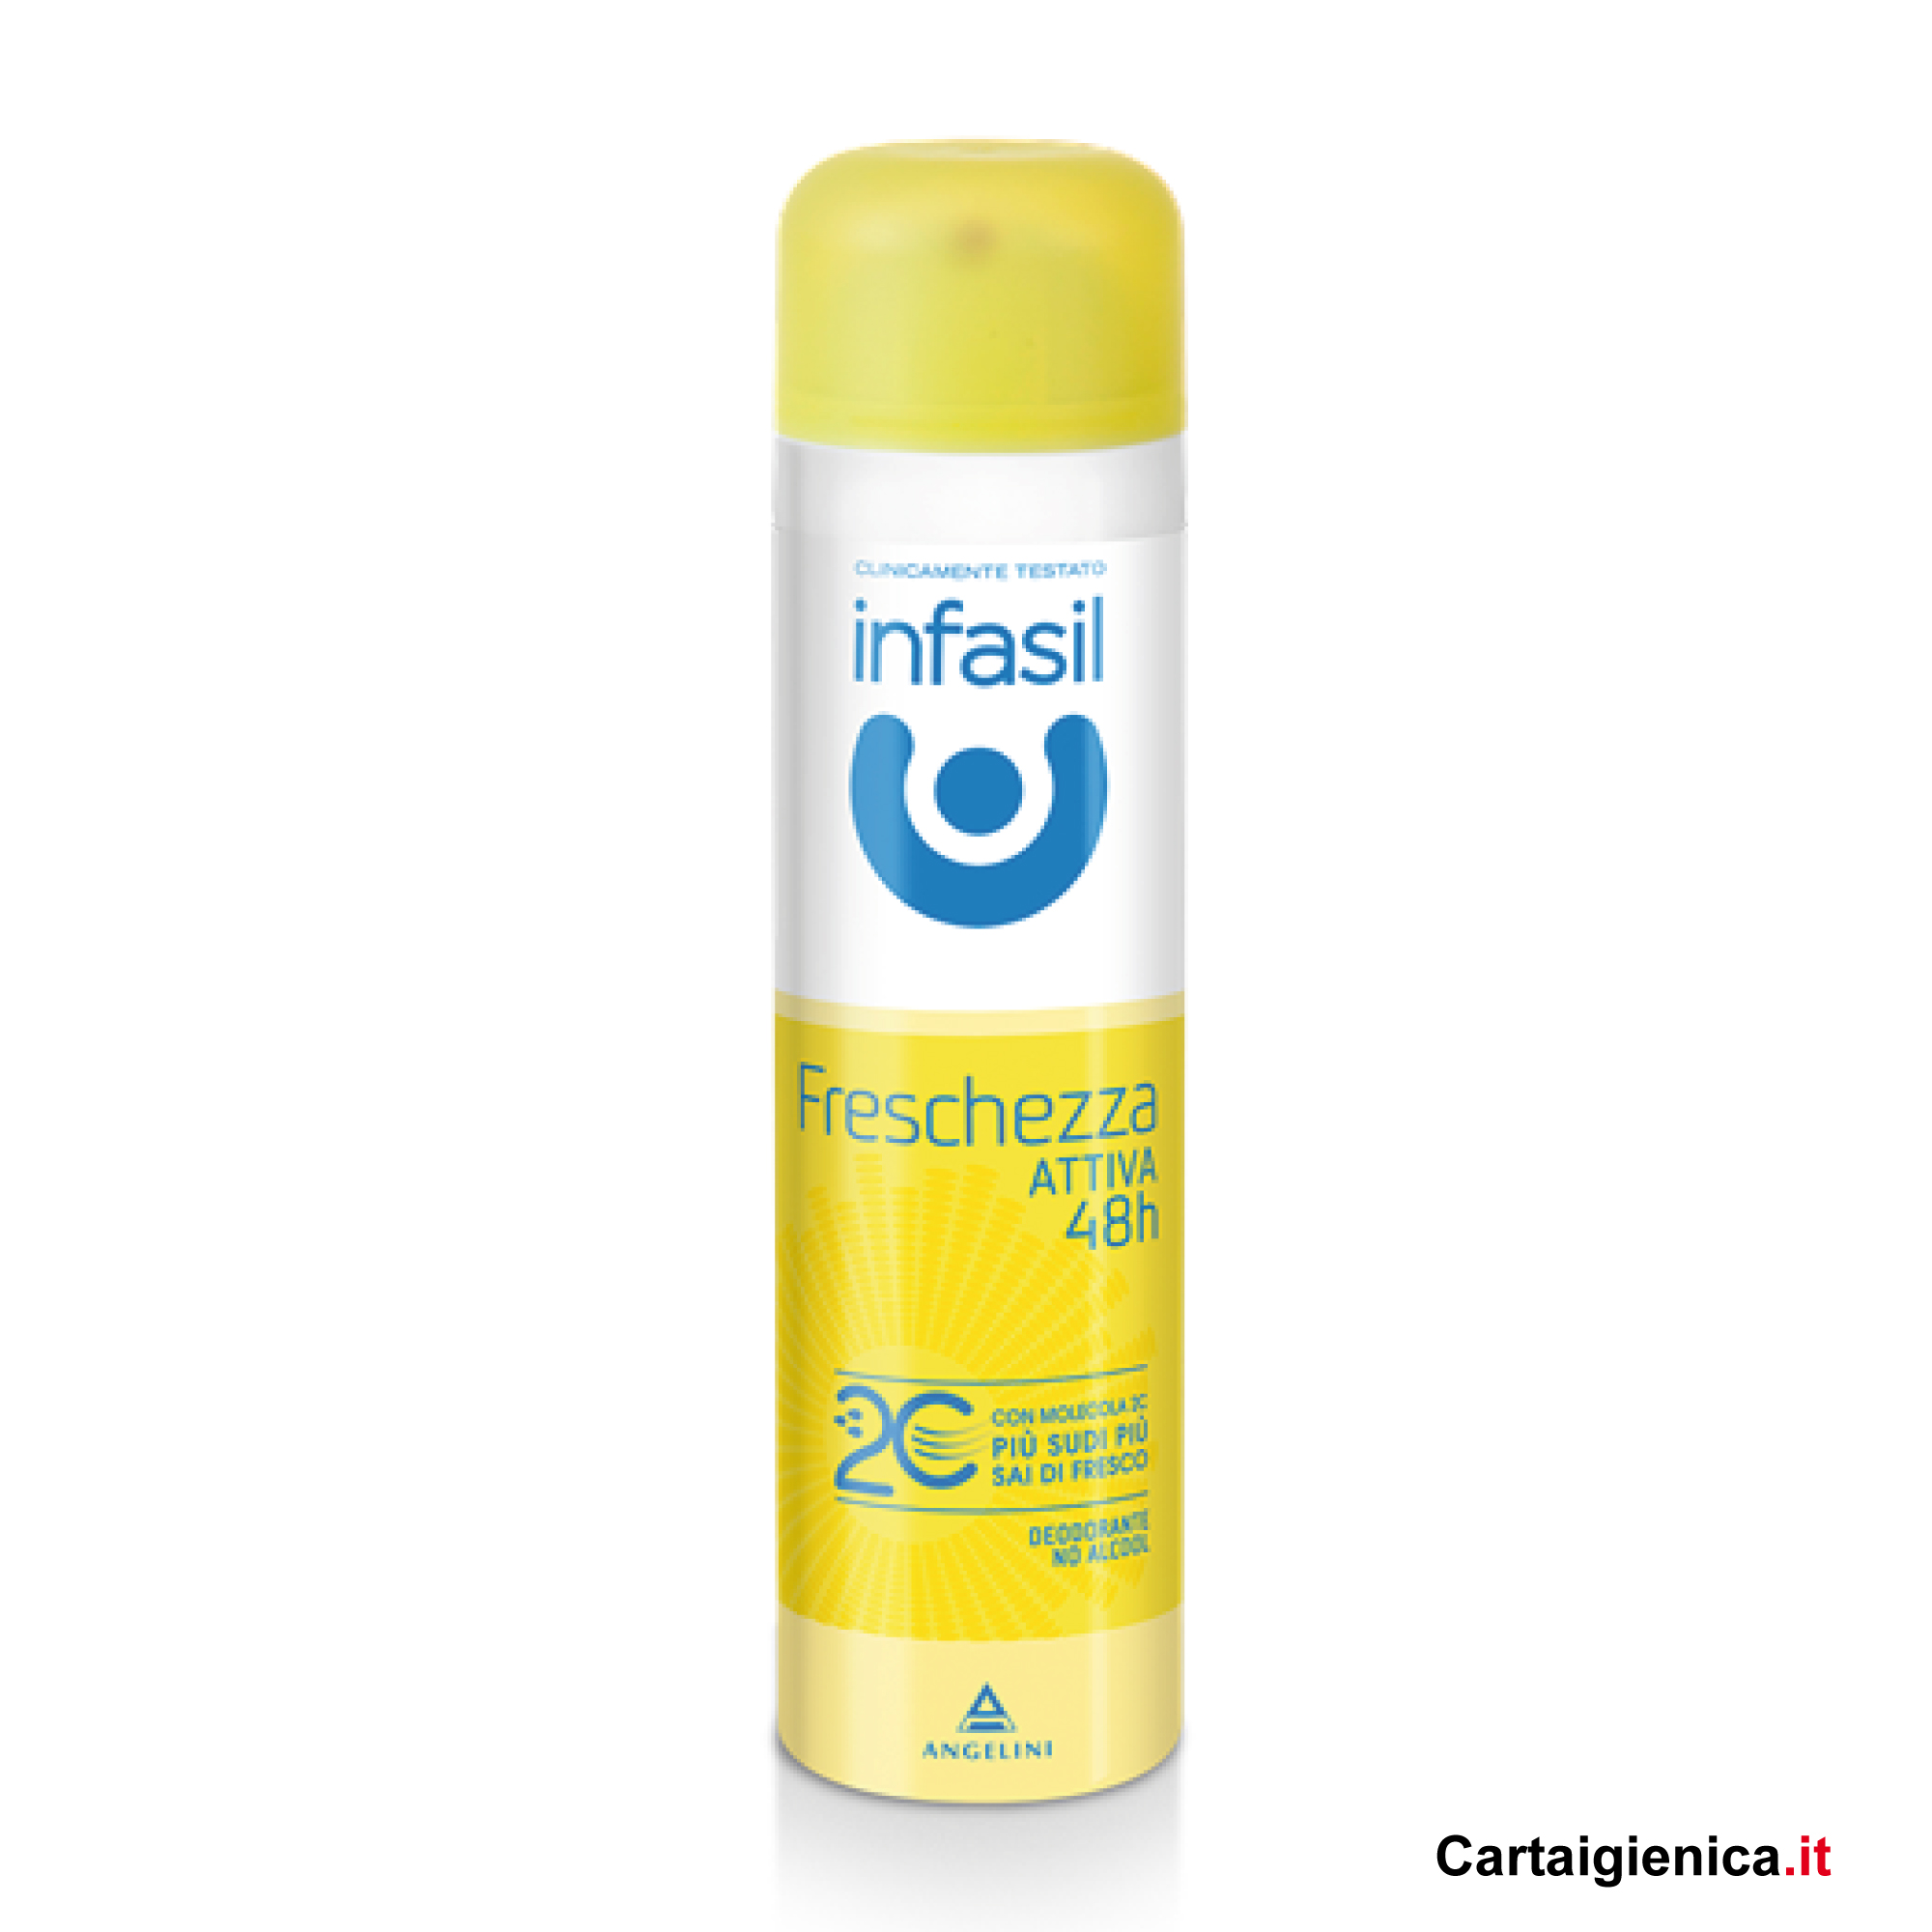 infasil freschezza attiva 48 deodorante spray 150 ml